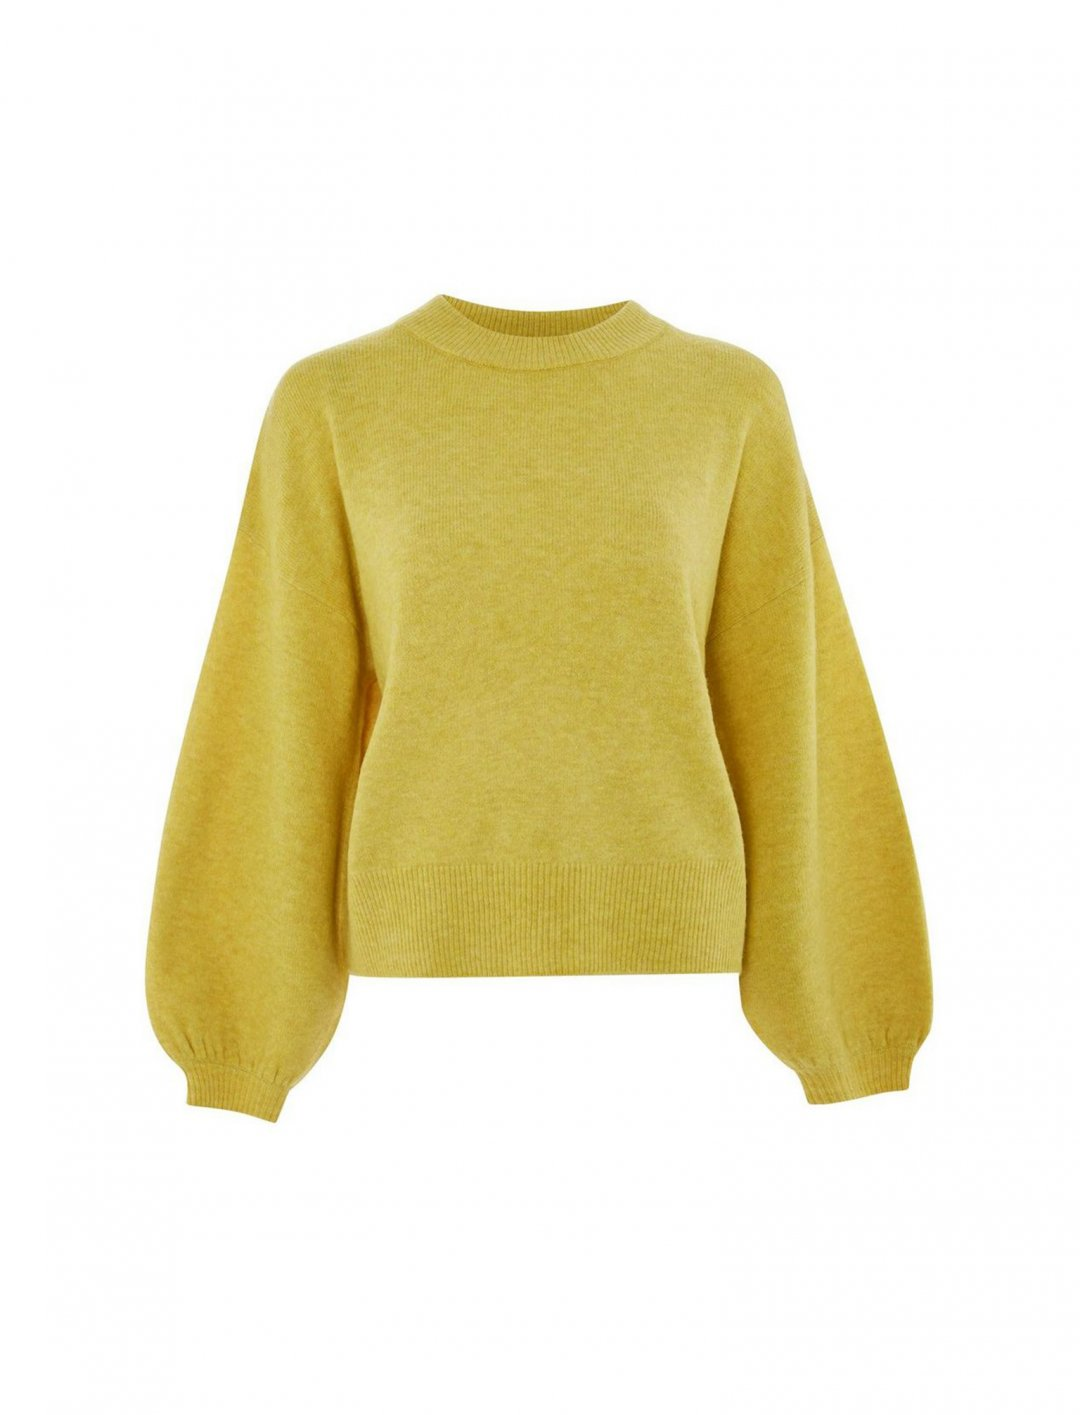 "Topshop Blouson Sleeve Jumper {""id"":5,""product_section_id"":1,""name"":""Clothing"",""order"":5} Topshop"